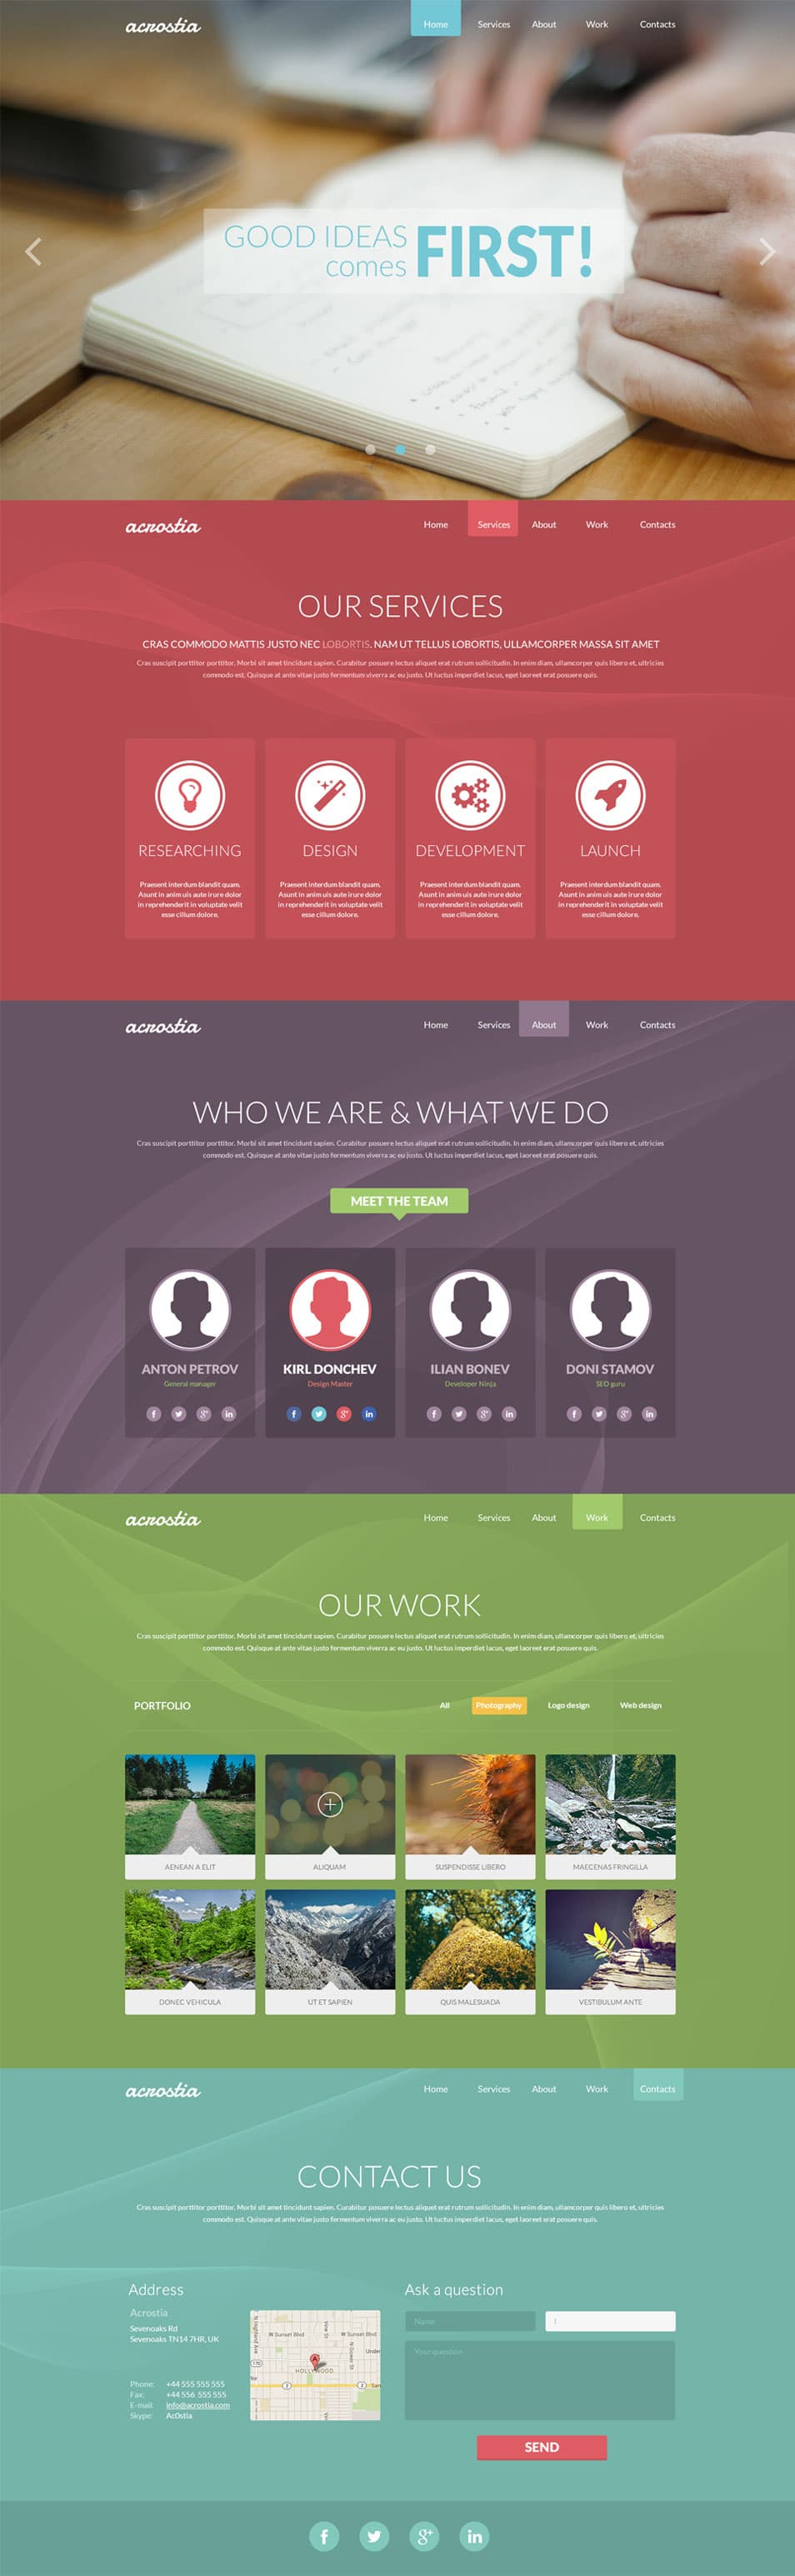 Acrostia – free one page template